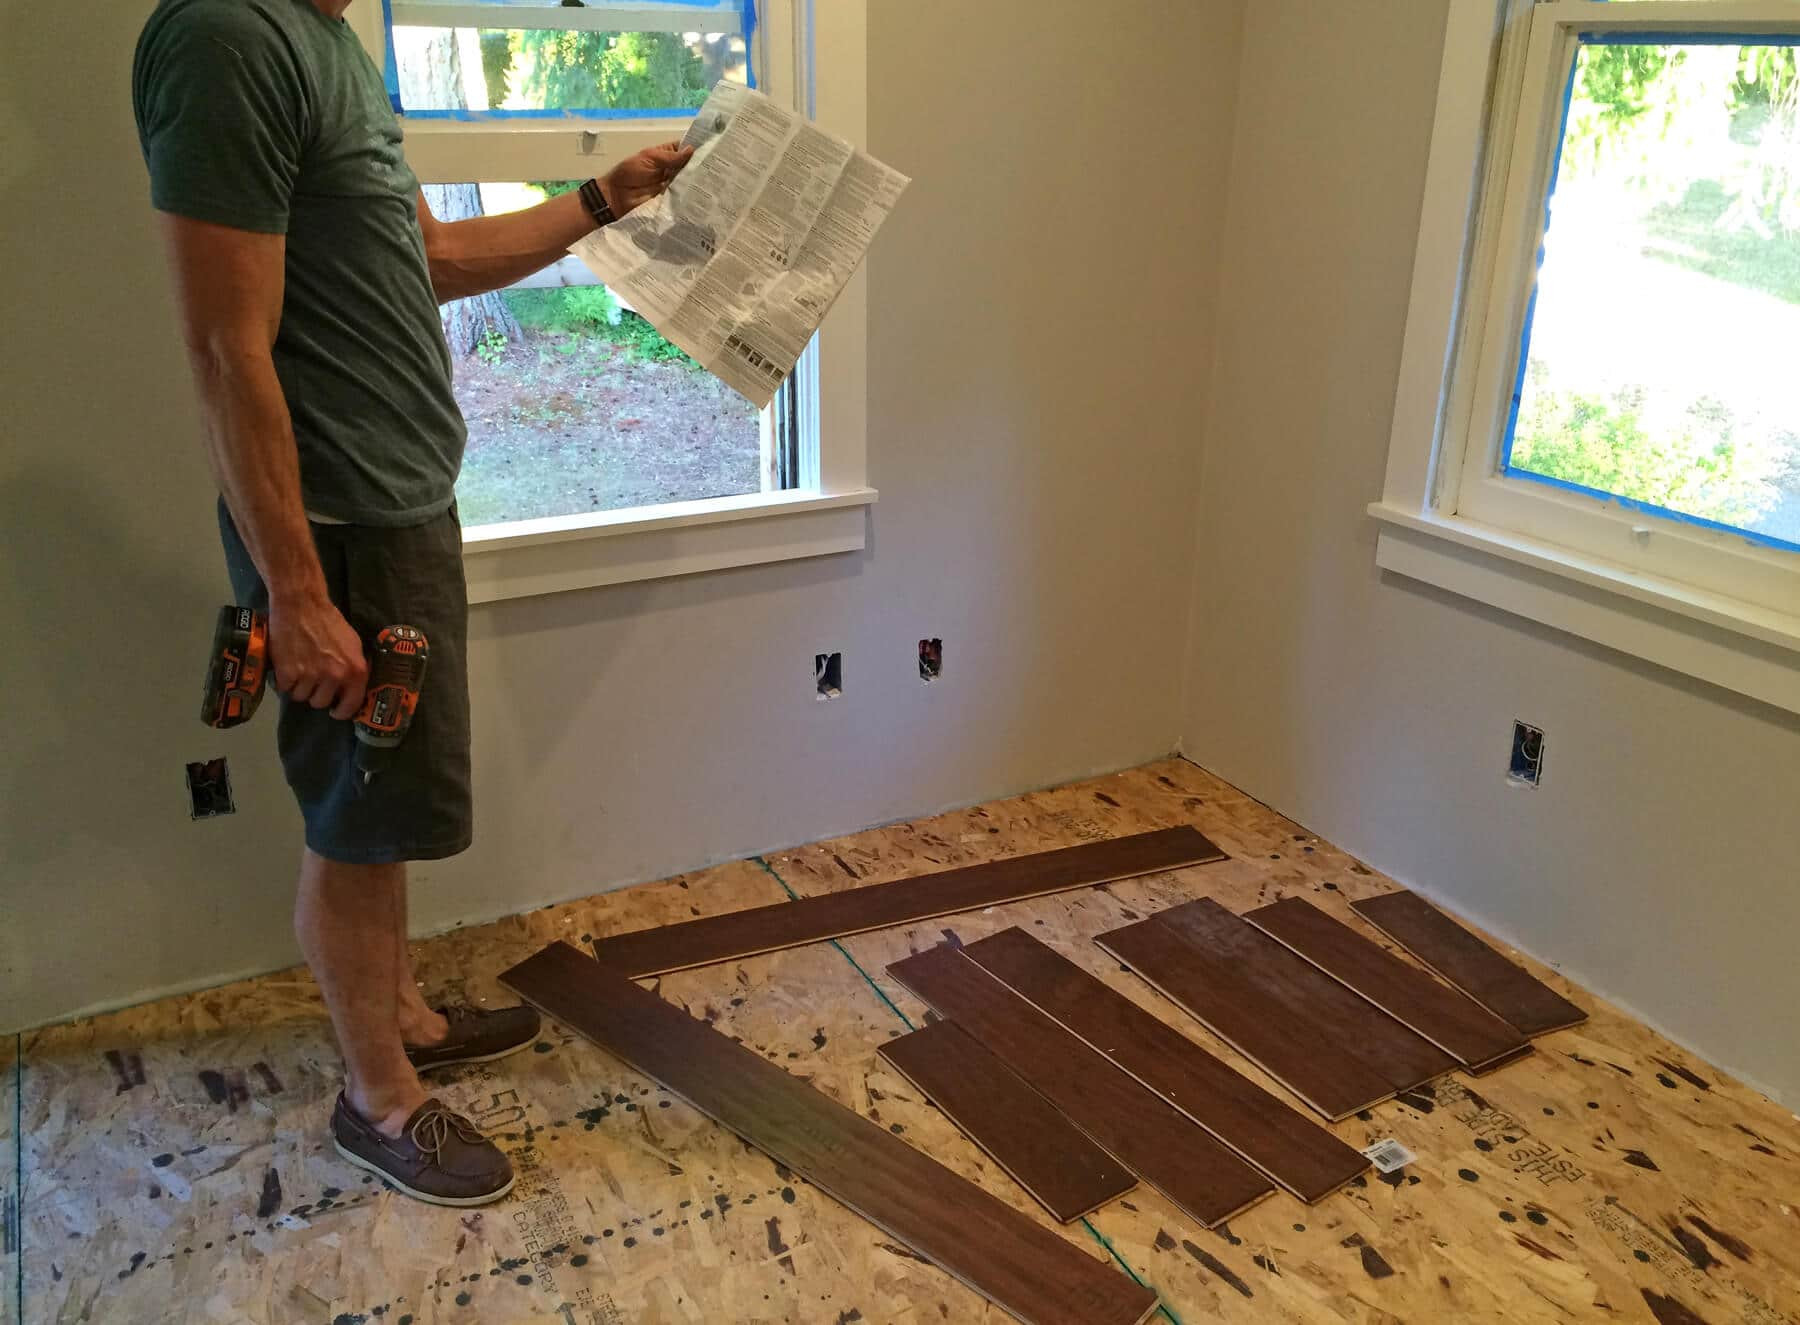 lowes canada hardwood flooring sale of the micro dwelling project part 5 flooring the daring gourmet within its crucial to get the first row even and straight because the rest of the floor will